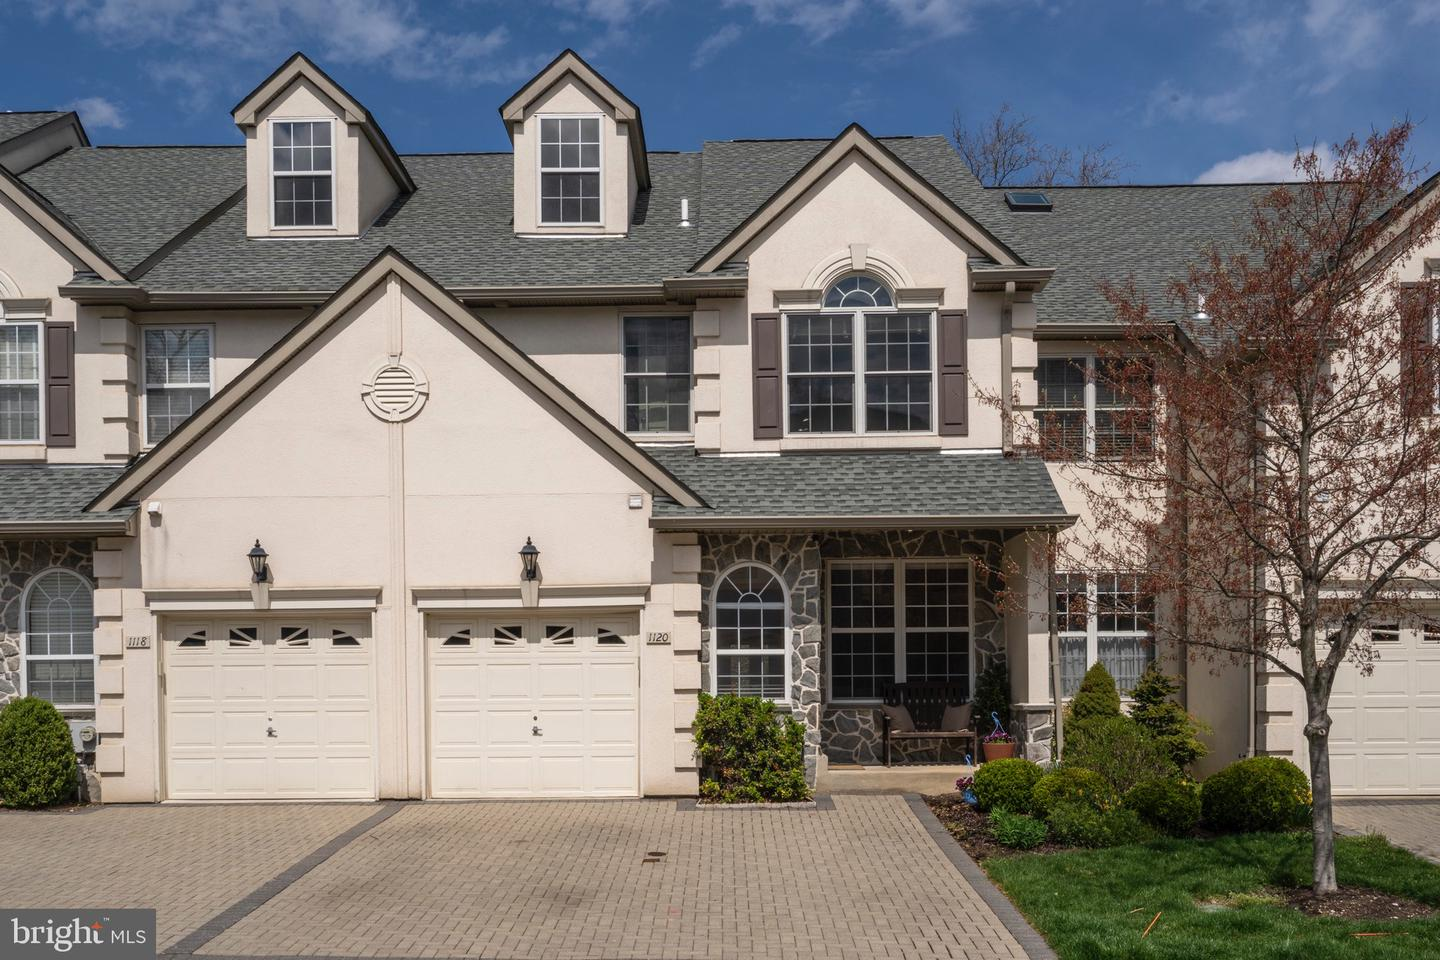 1120 Brians Way Wayne, PA 19087